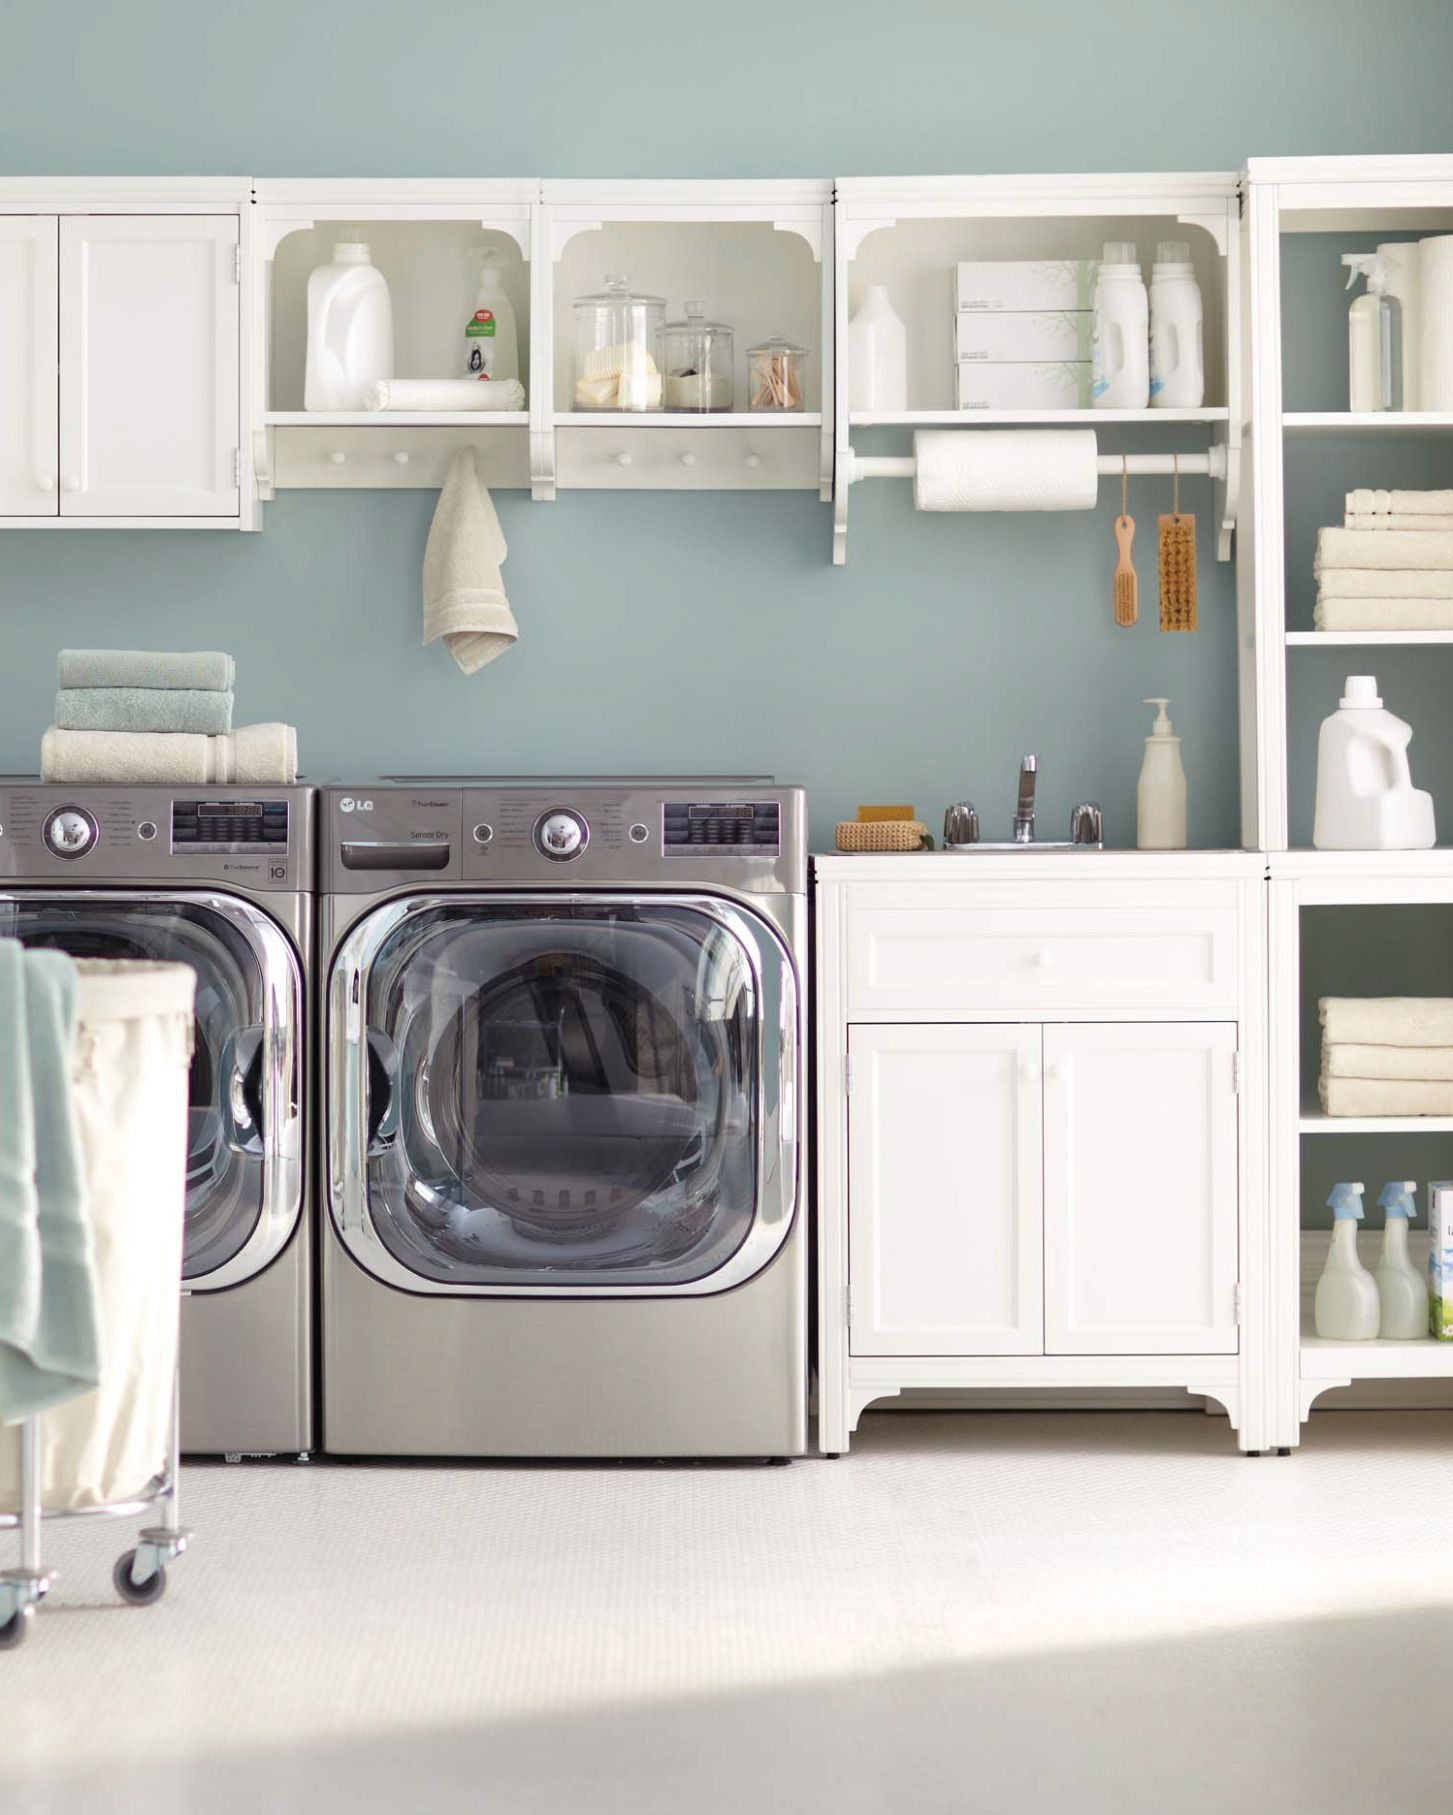 10 Essential Laundry Room Organizing Tips | Martha Stewart - laundry room ideas to hang clothes